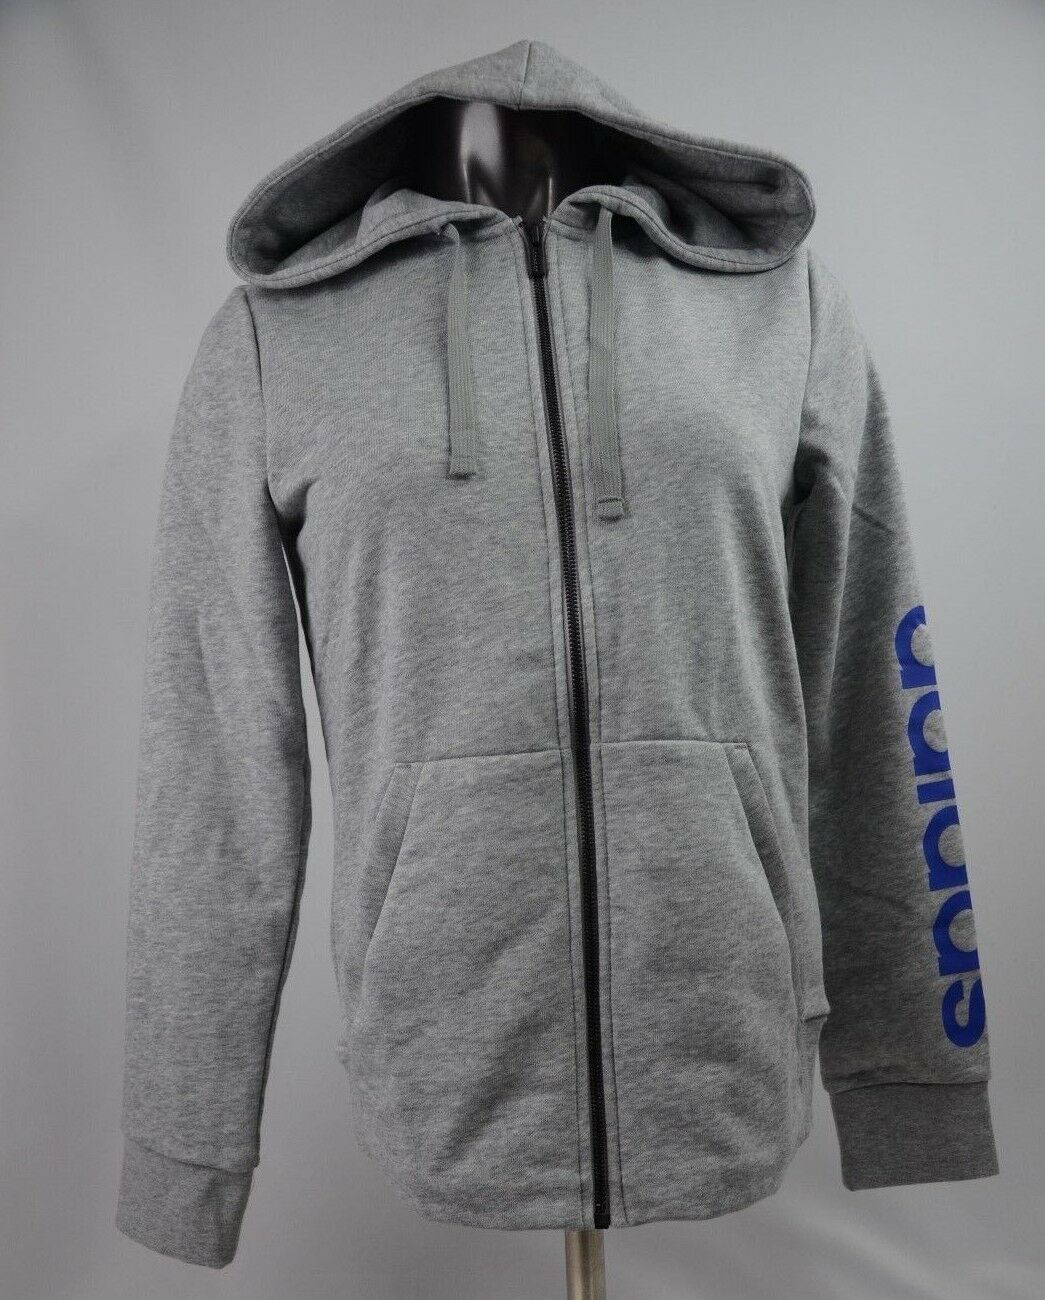 Adidas Essential Hoodie Grey bluee Women's Size S-L New with Tags DM3308